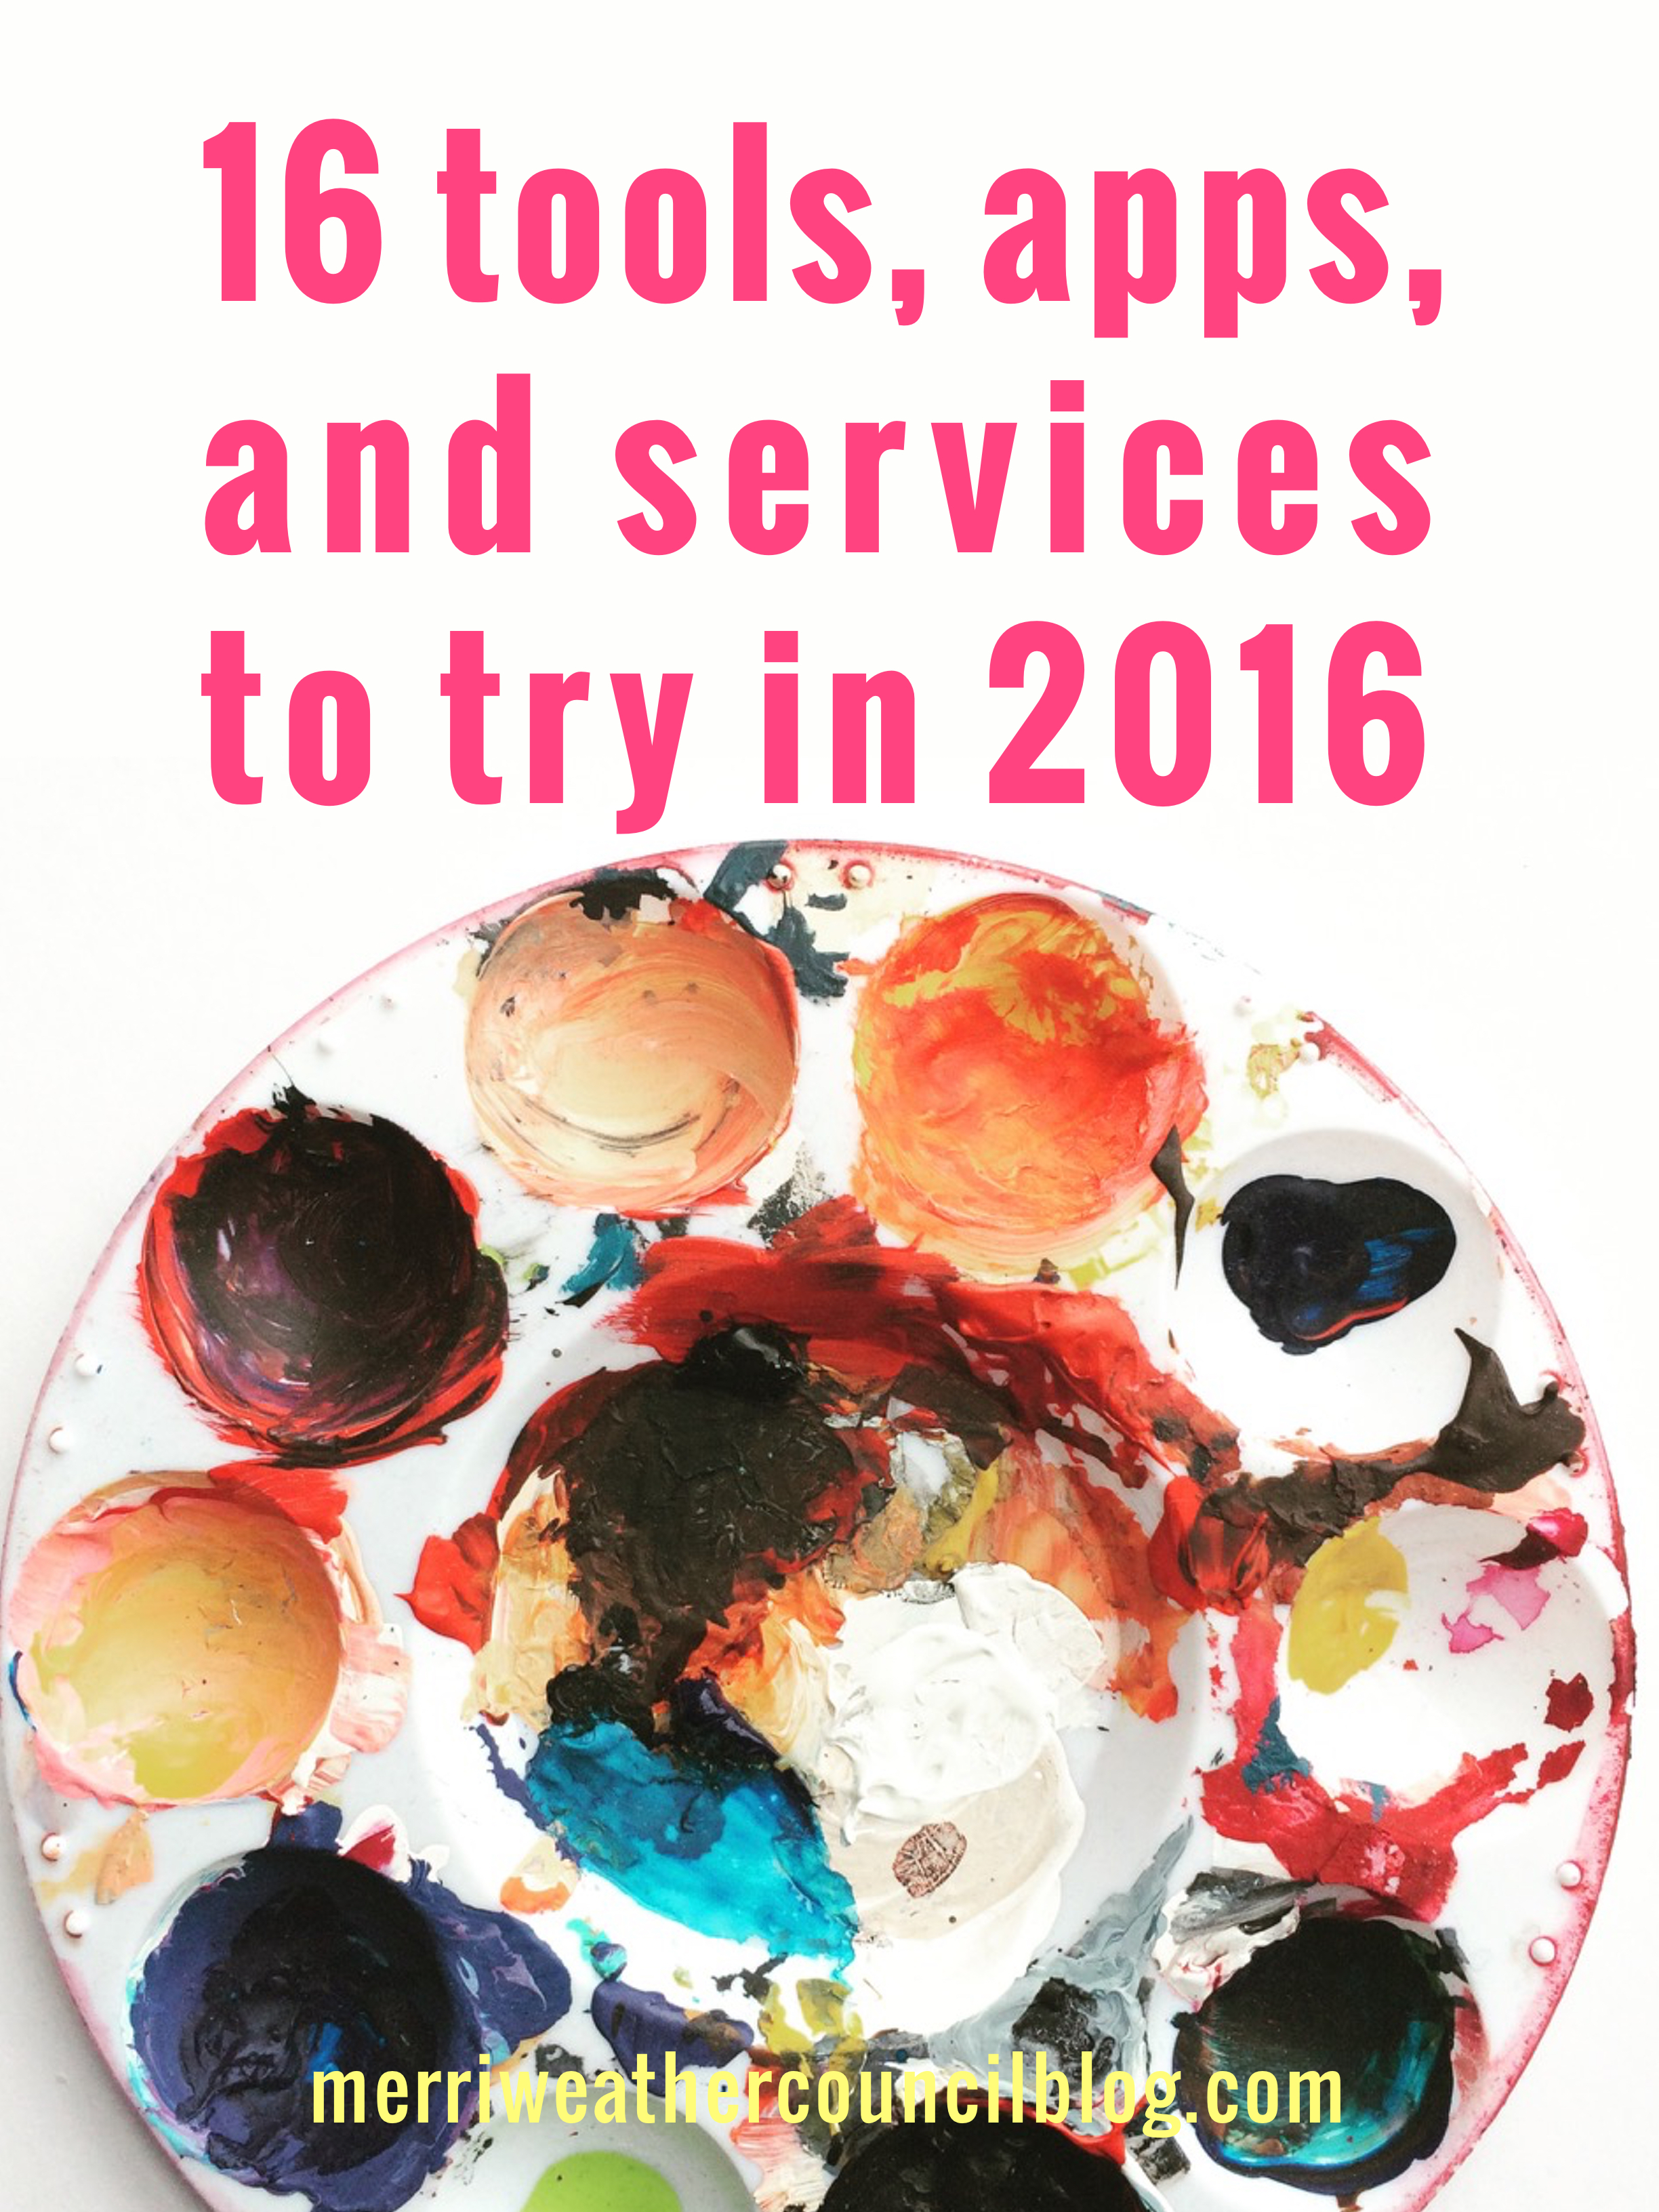 16 tools, apps and services to try in 2016 | the merriweather council blog